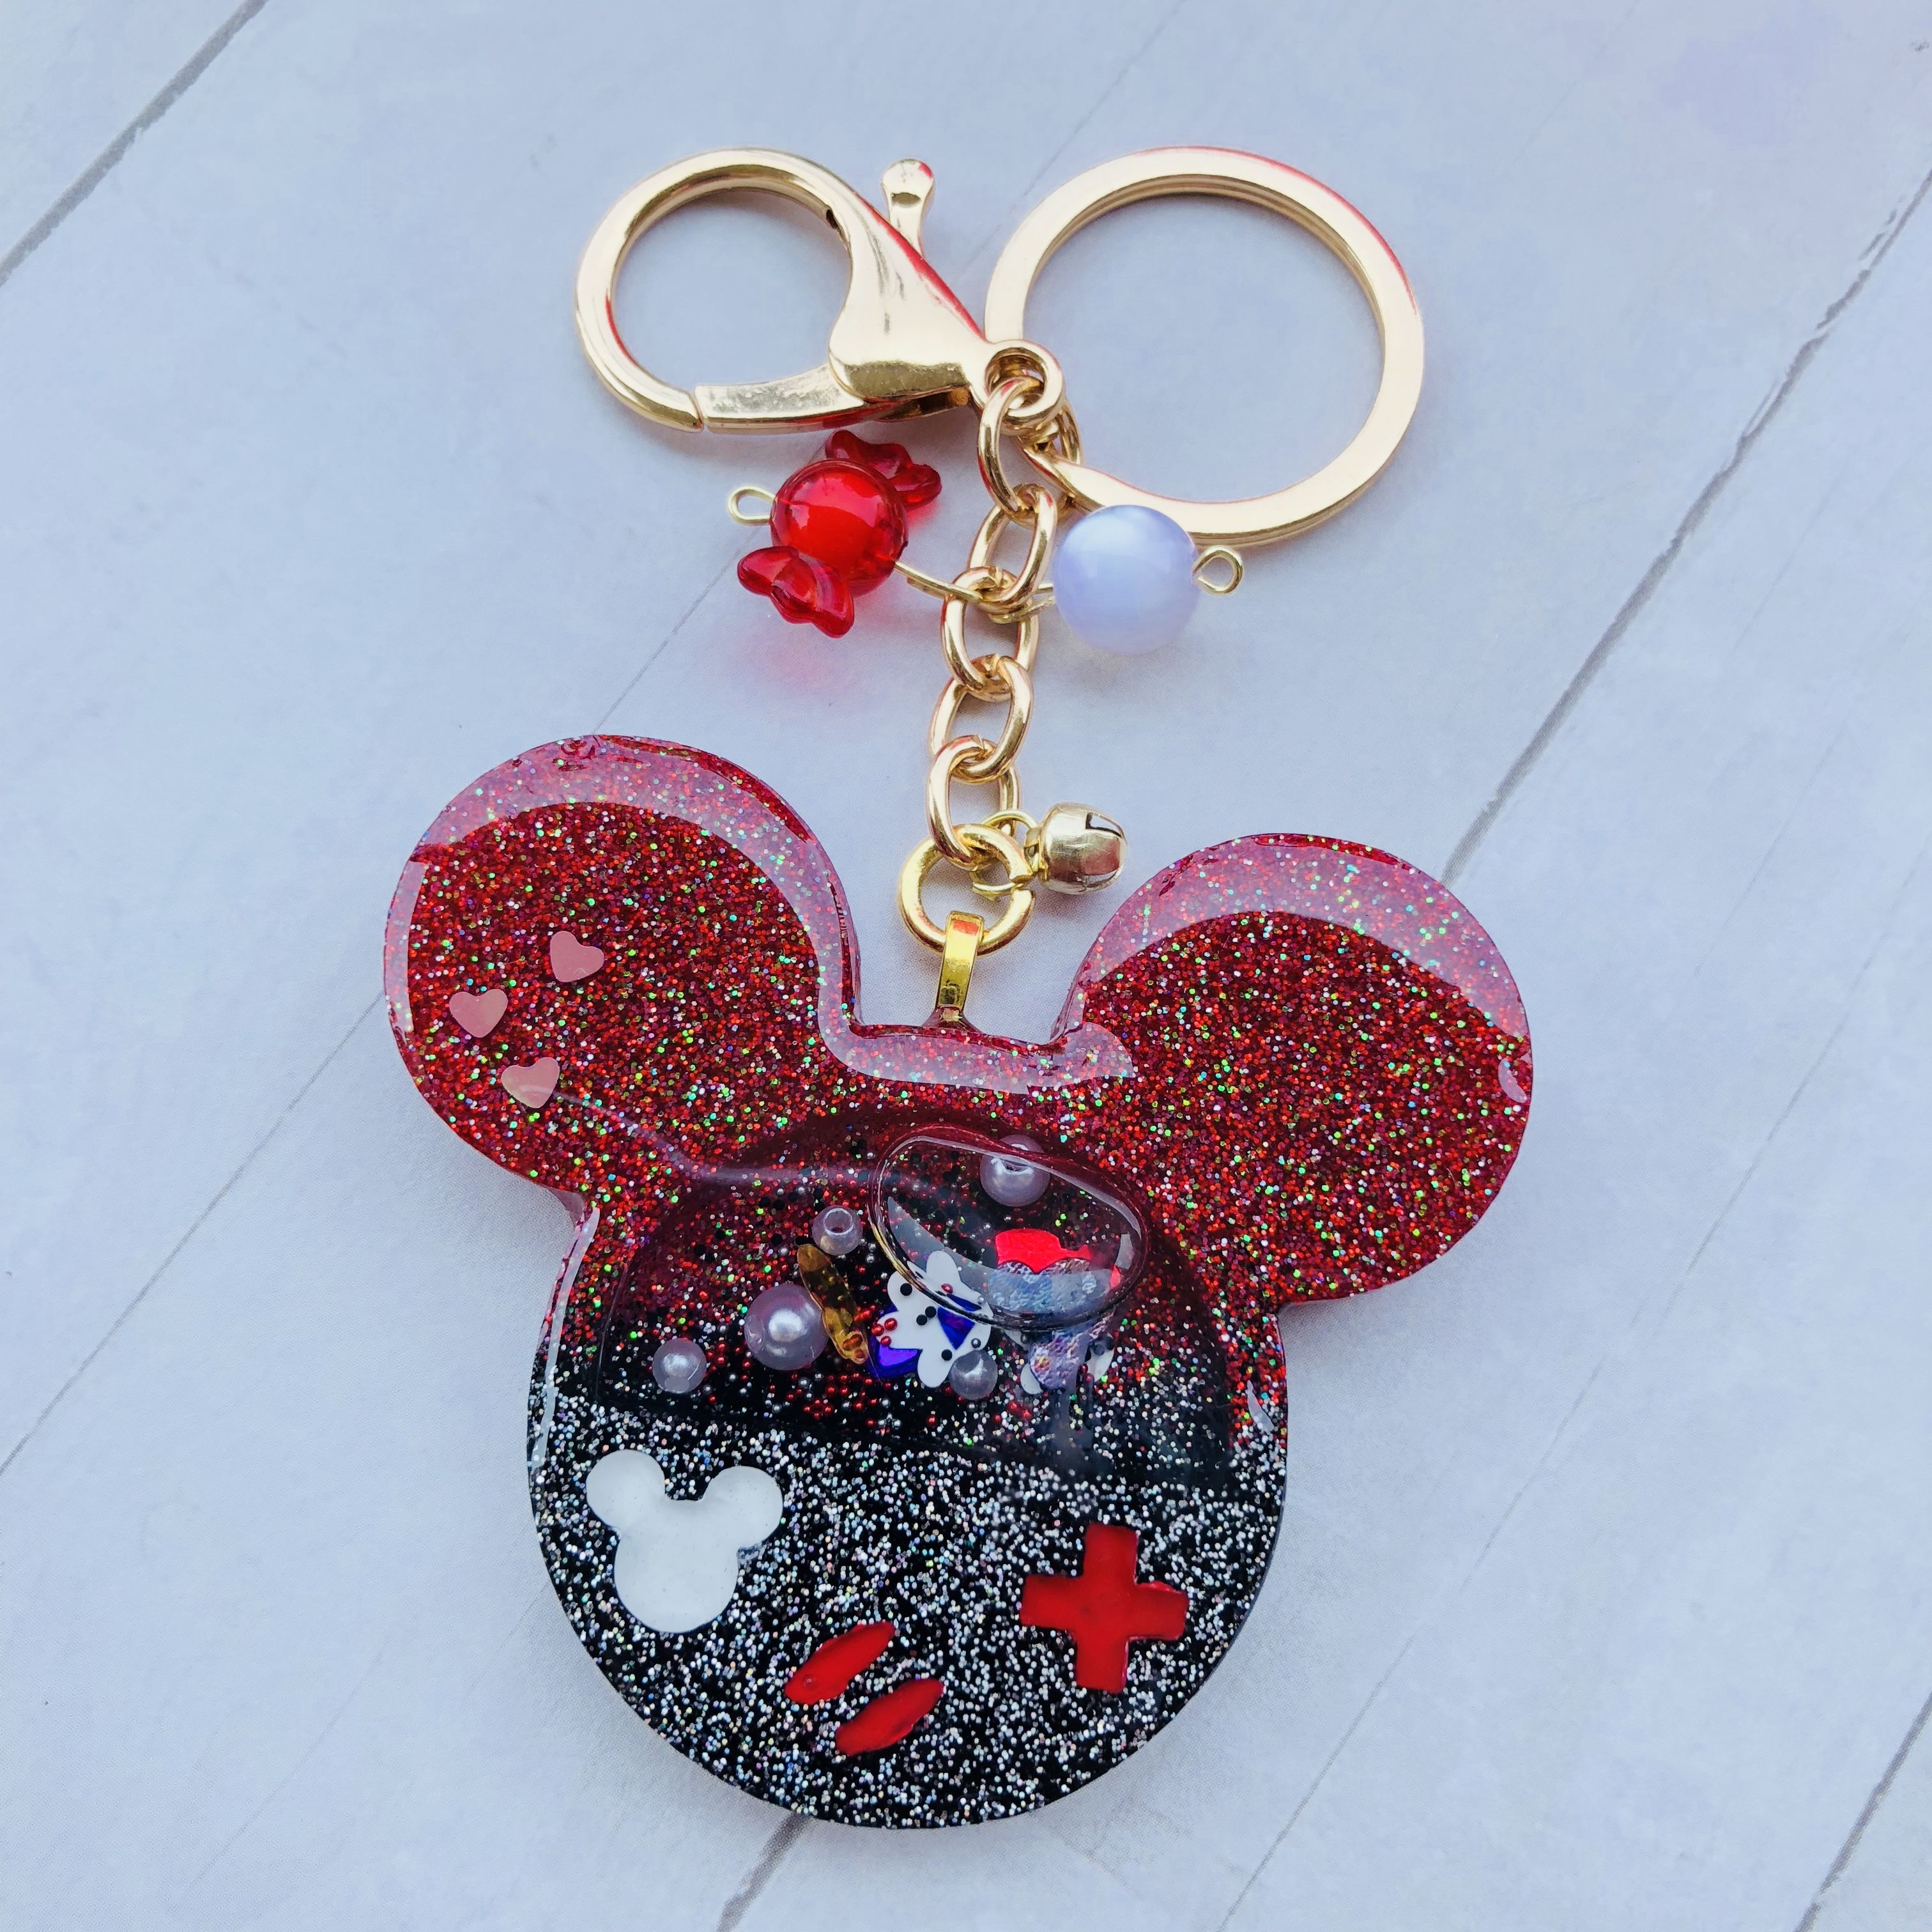 Handmade Resin Keychain Bag Charm Liquid Shaker Mickey Mouse Gameboy Resin Jewelry Diy Epoxy Resin Crafts Resin Charms